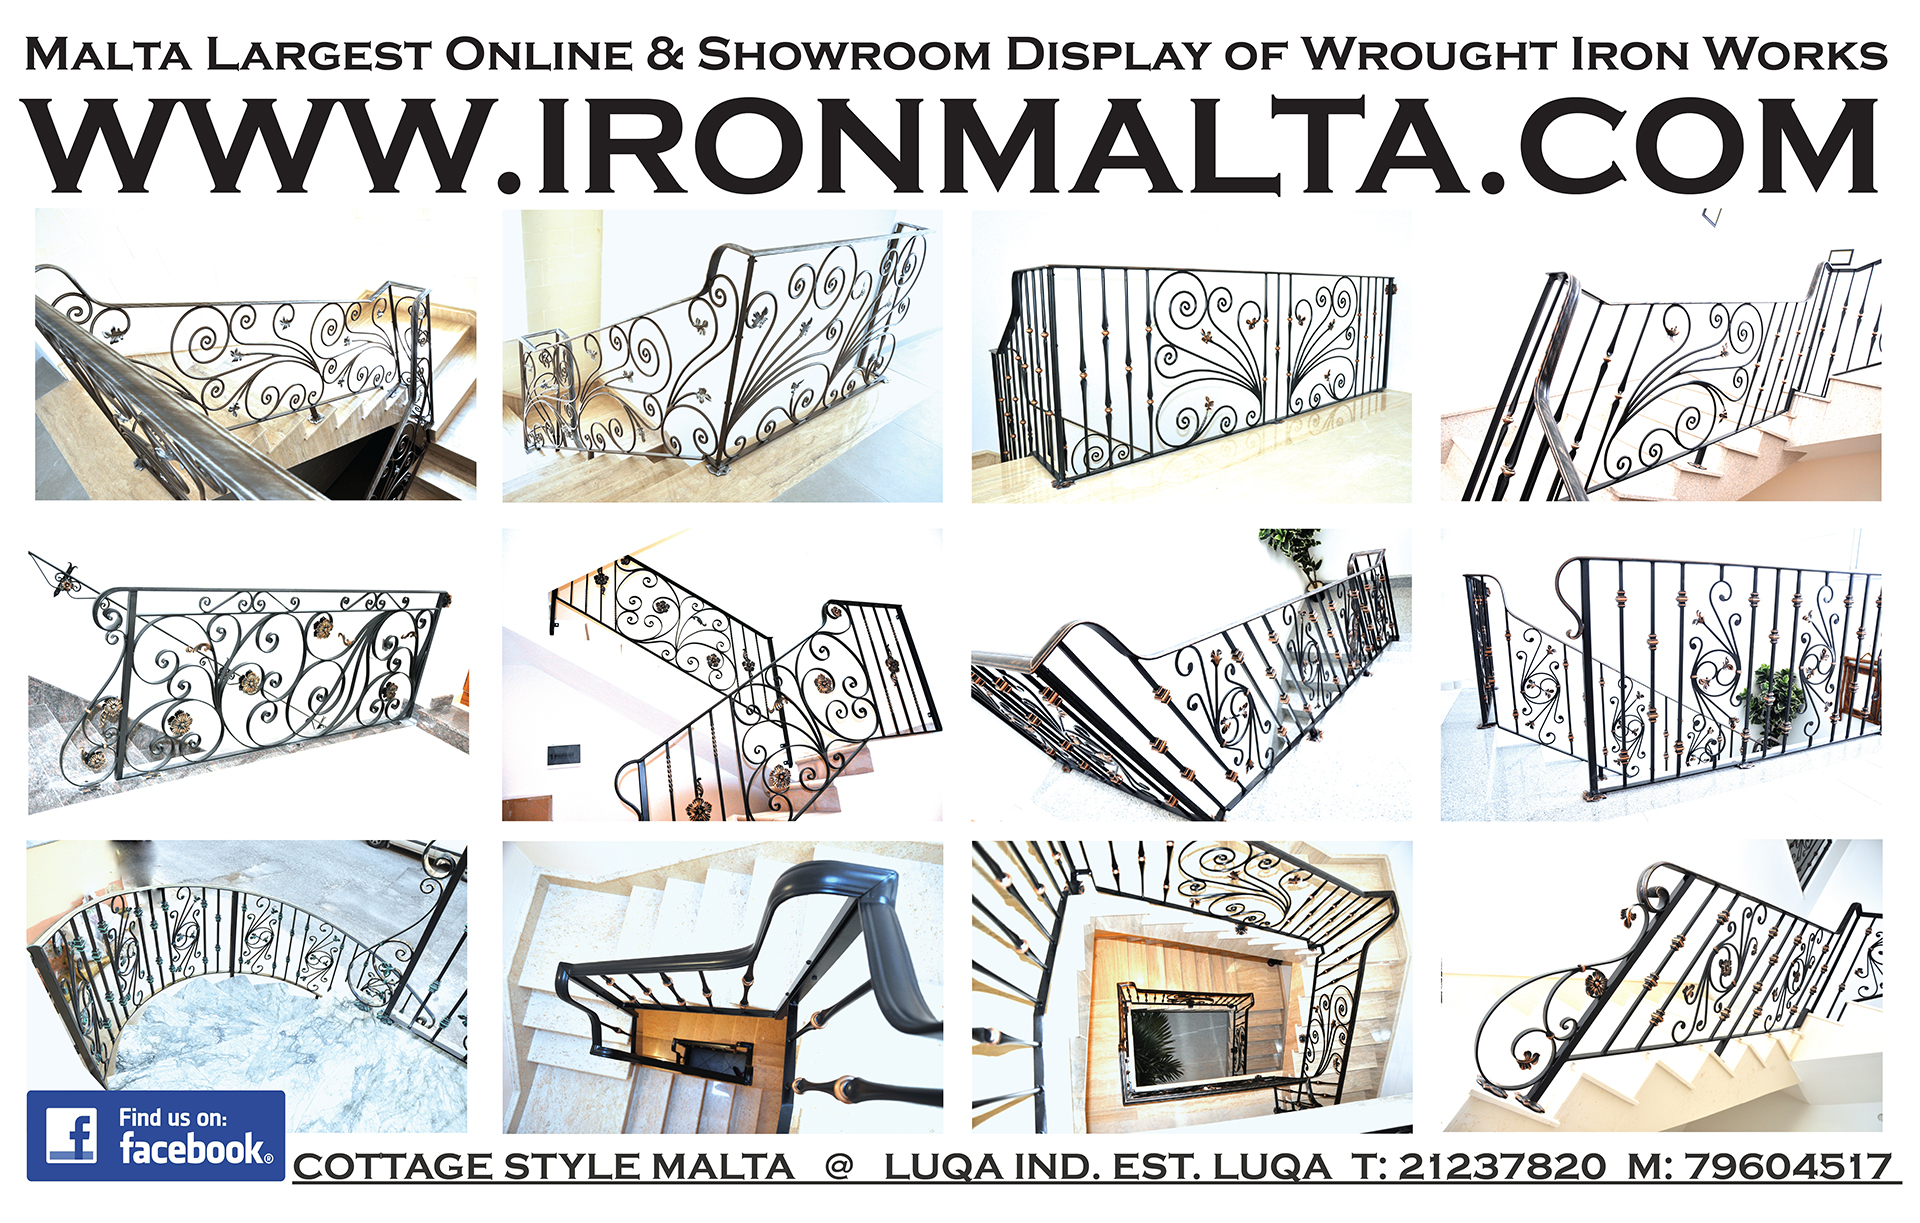 Iron Malta .com facebook Malta Largest online and Showroom Display of wrought iron works -low res Copy